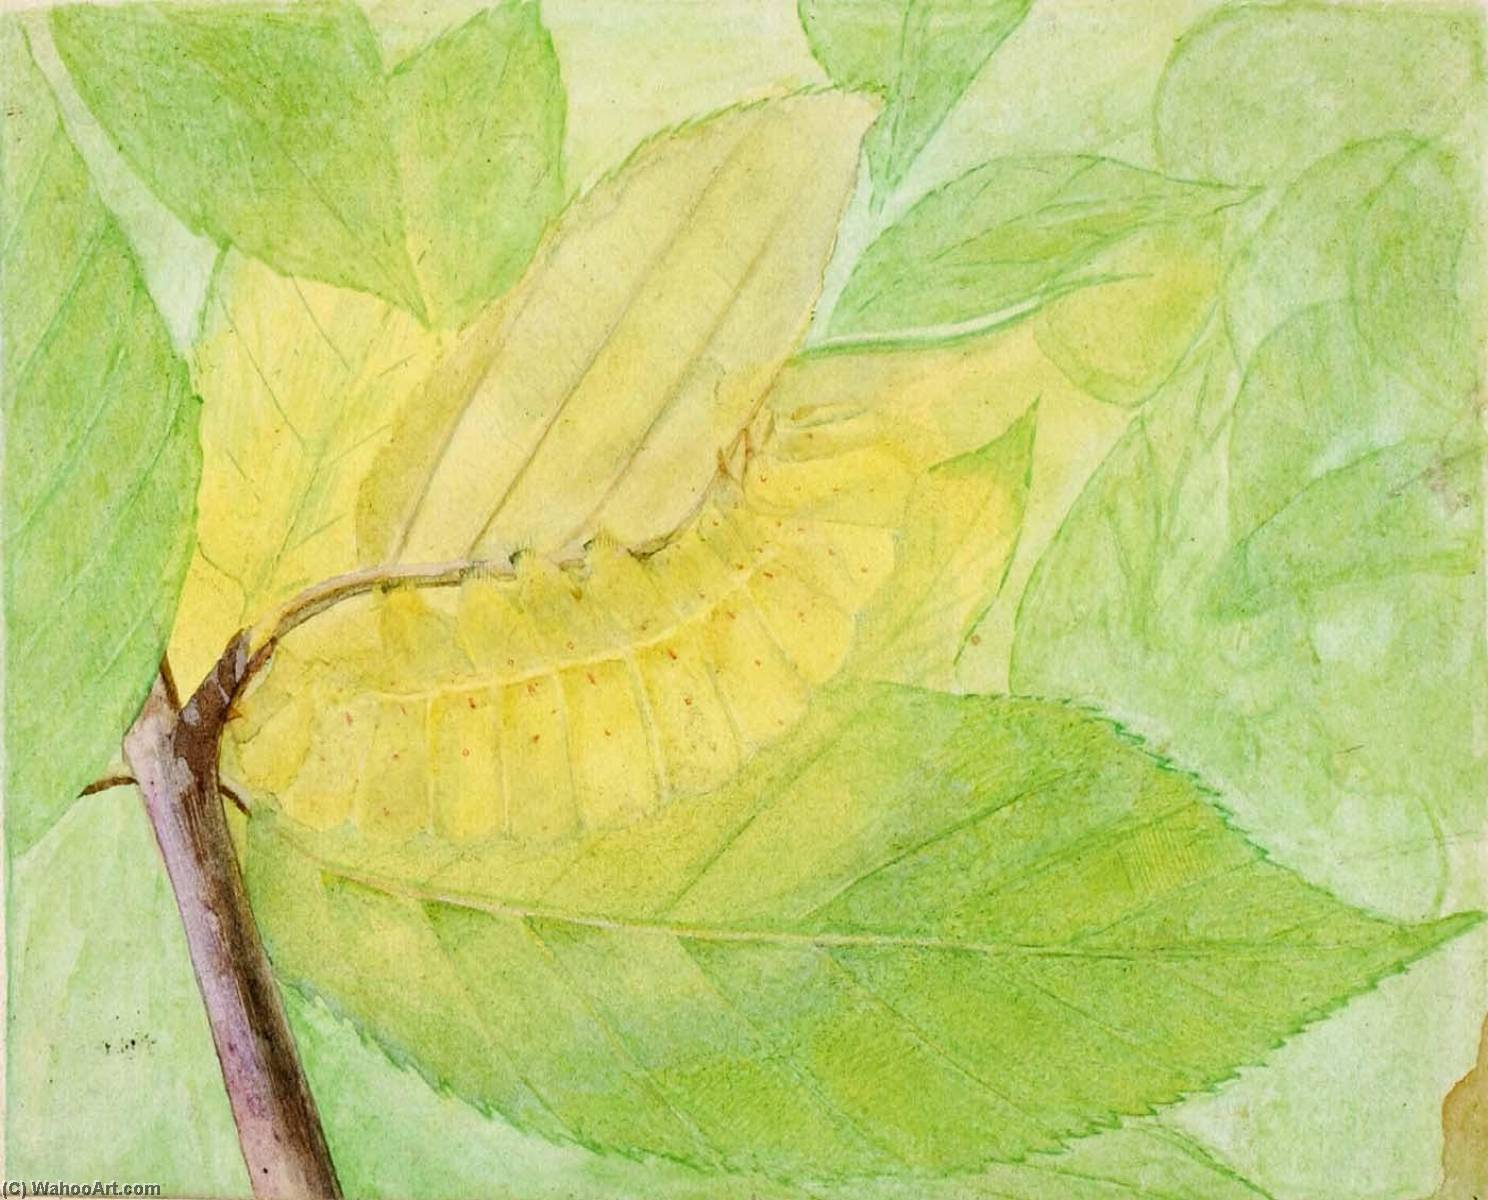 Lunar Caterpillar, study for book Concealing Coloration in the Animal Kingdom, Watercolour by Abbott Handerson Thayer (1849-1921, United States)